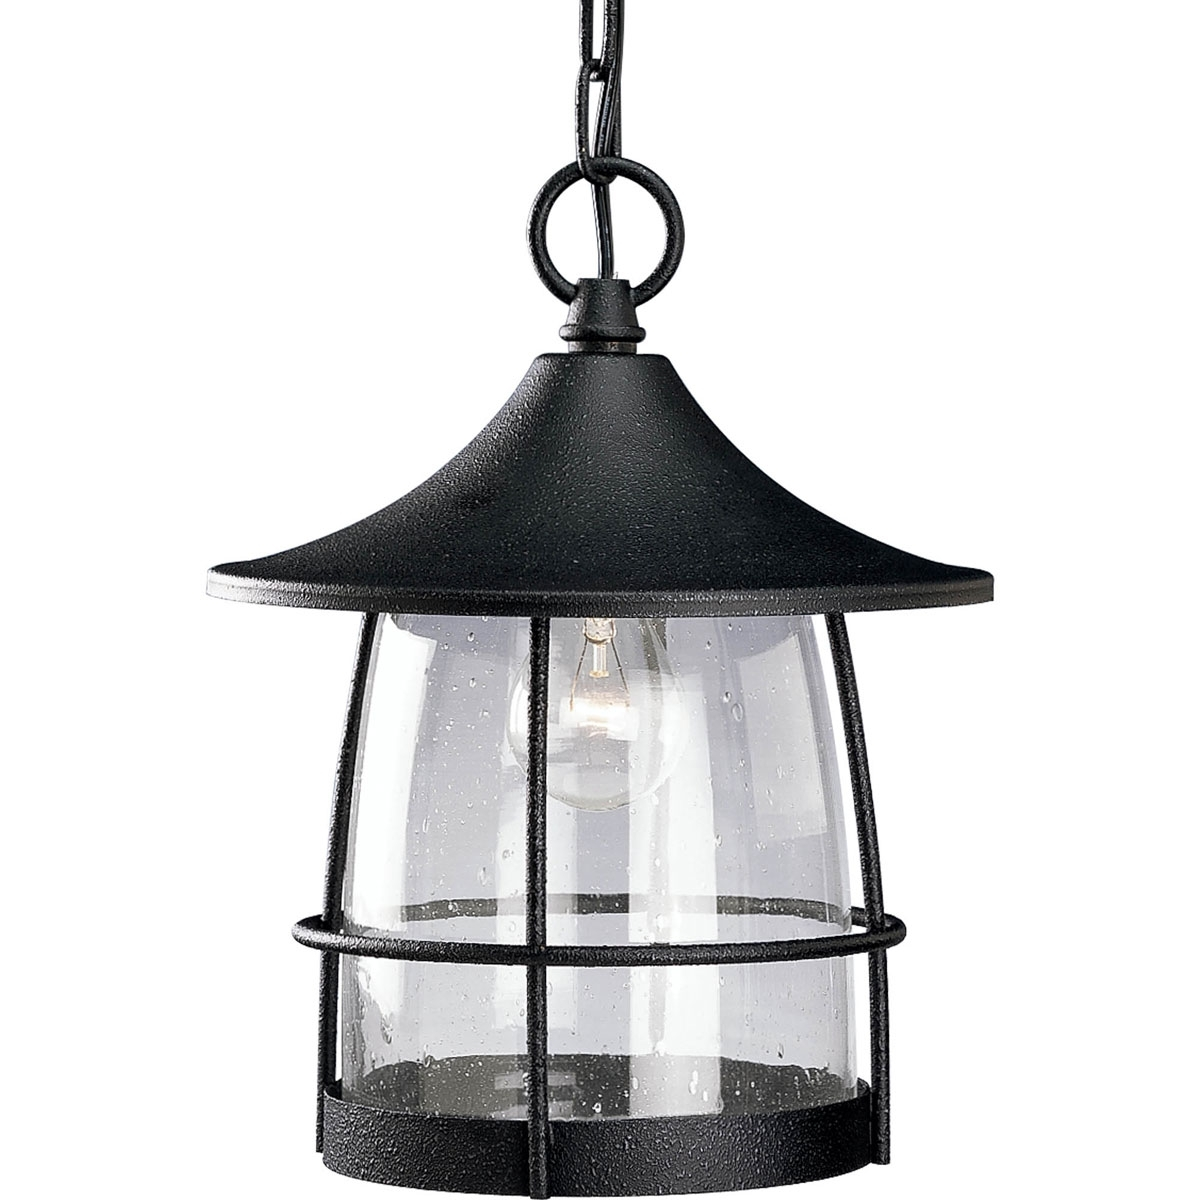 Furniture : Outdoor Hanging Lights Lamps Expo Pendant Perth With Regard To Melbourne Outdoor Hanging Lights (#7 of 15)